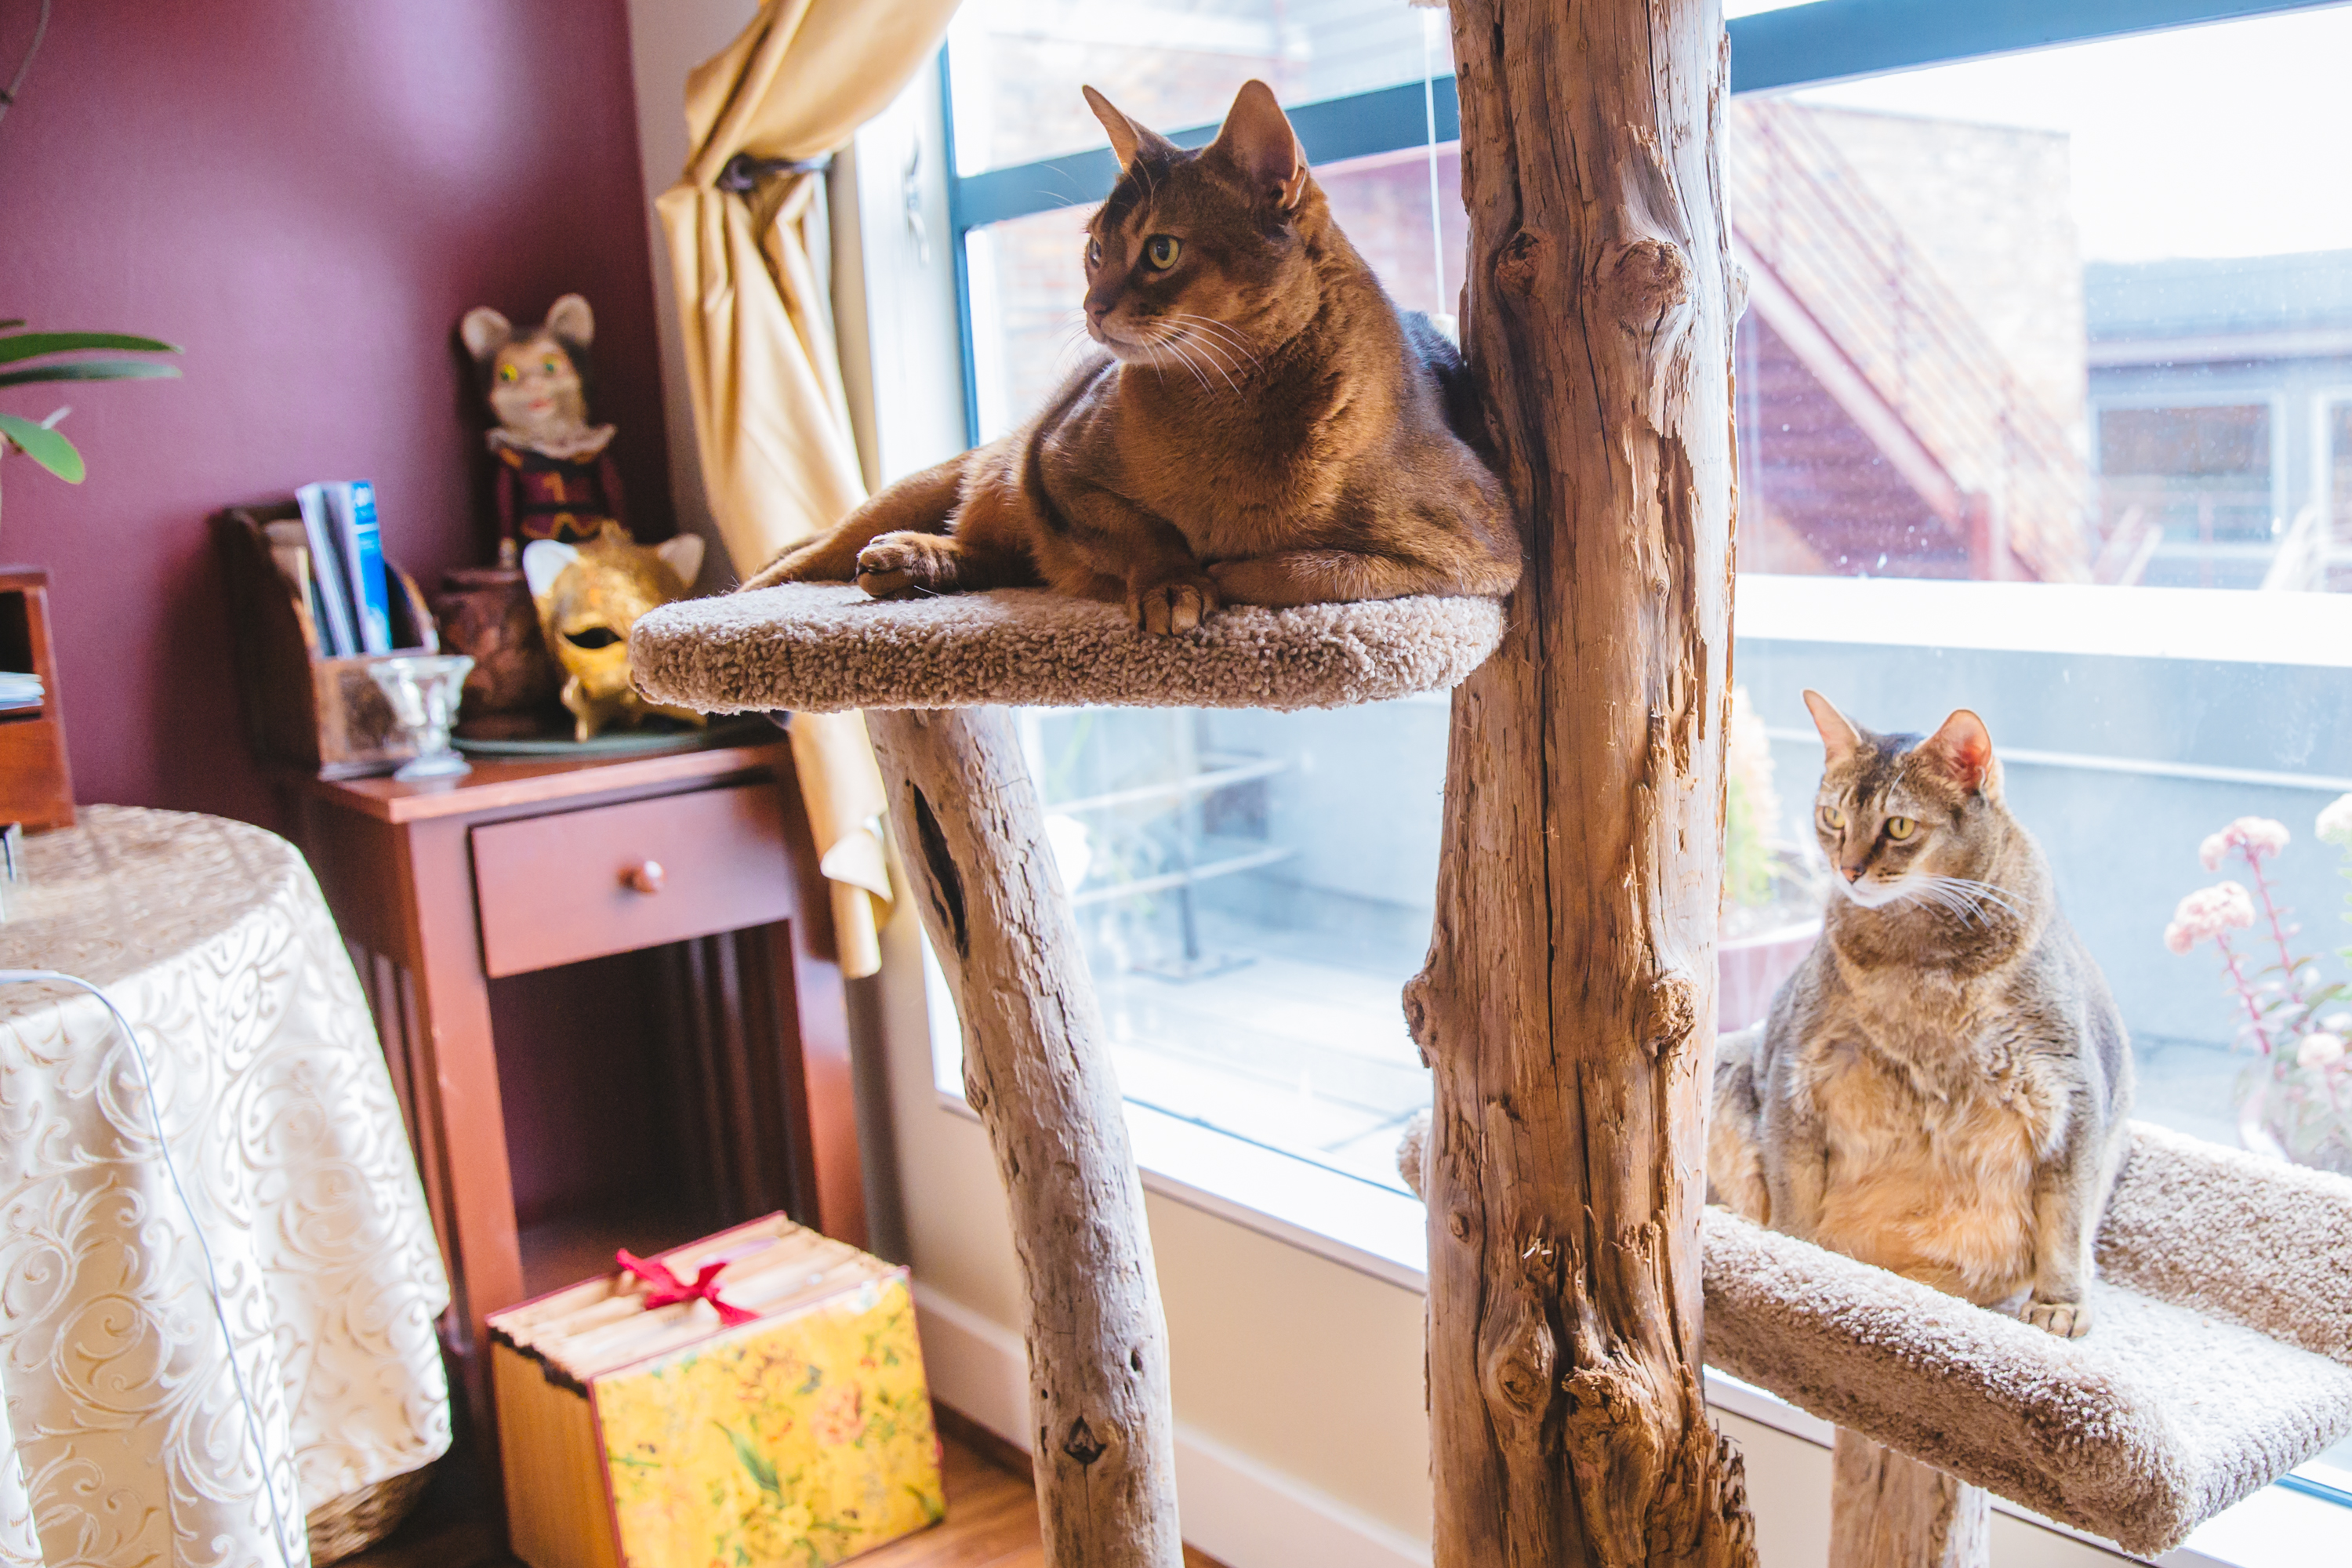 "Meet the Downtown Abbys: Mister B, Ramses, and Miss Rose the Abyssinians. Mister B is the old man of the group at 12 years young, then Ramses at 9 years young and then last but not least, Miss Rose at 5 years young. Mister B is a former ""best in show"" show cat and has fully embraced his post fame lifestyle and settled into a routine of snacks and naps. But - that doesn't mean that he still isn't ready for his close ups. Ramses is a rescue from Seattle Area Feline Rescue and is ""the heart of the home."" Ramses has an adventurous spirit and a keen sense to hunt socks, gloves, and hats for sport. Miss Rose is considered the ""devil"" of Belltown and has been seen leaping across the rooftops, spying on neighbors and hunting the occasional insect. The Downtown Abby's like sleeping, eating, catnip (Ramses has a problem) being brushed, watching birds, yogurt, chicken, and snuggling. They dislike empty bowls, loud noises and the vacuum  cleaner. (Image: Sunita Martini / Seattle Refined)."